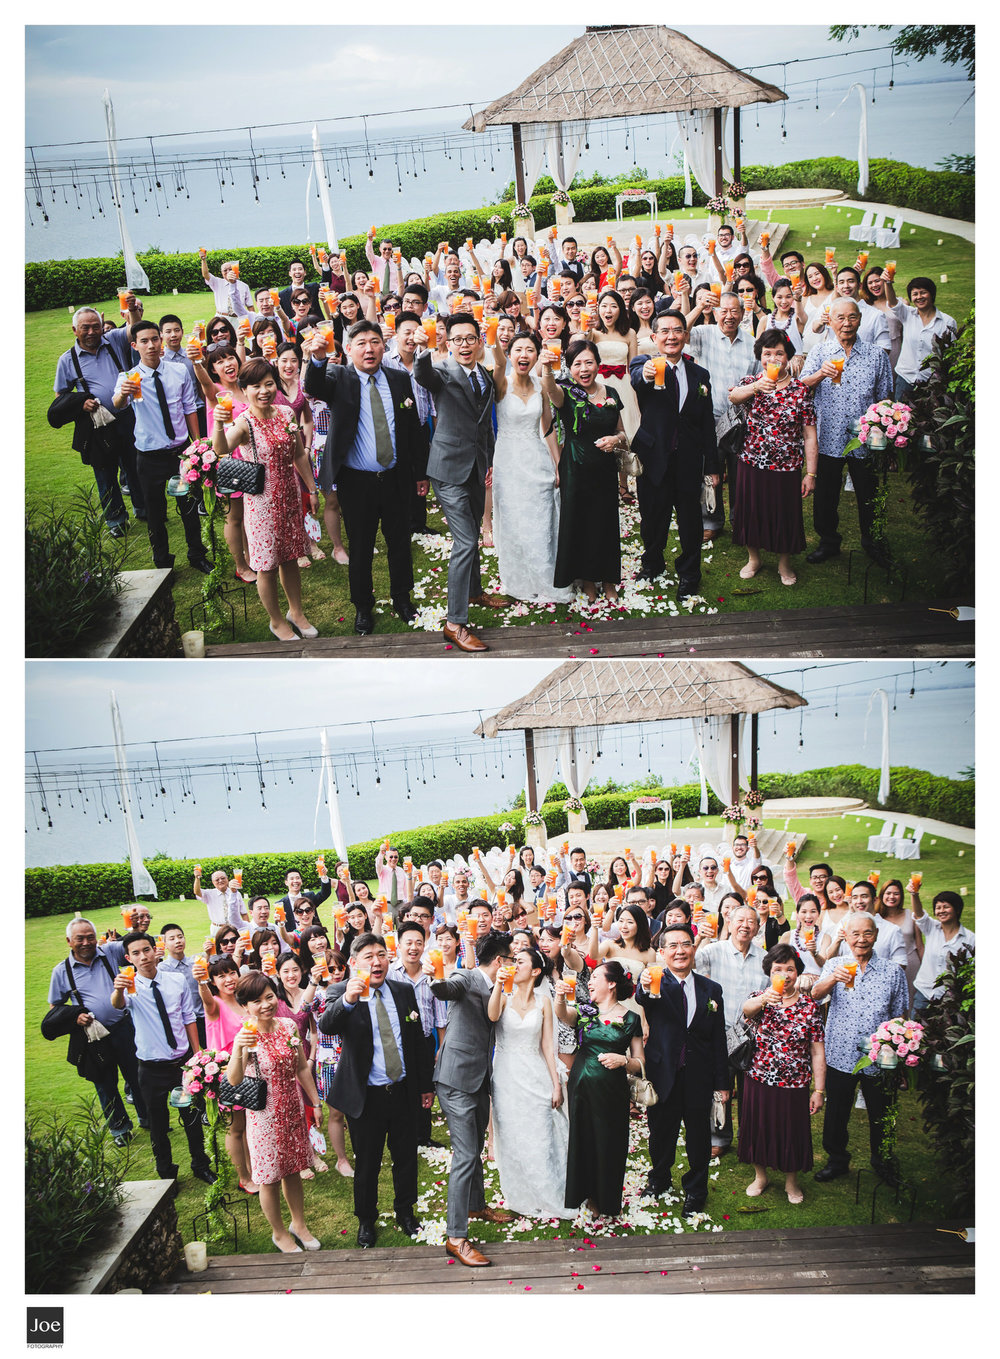 joe-fotography-bali-wedding-ayana-resort-janie-sean-57.jpg